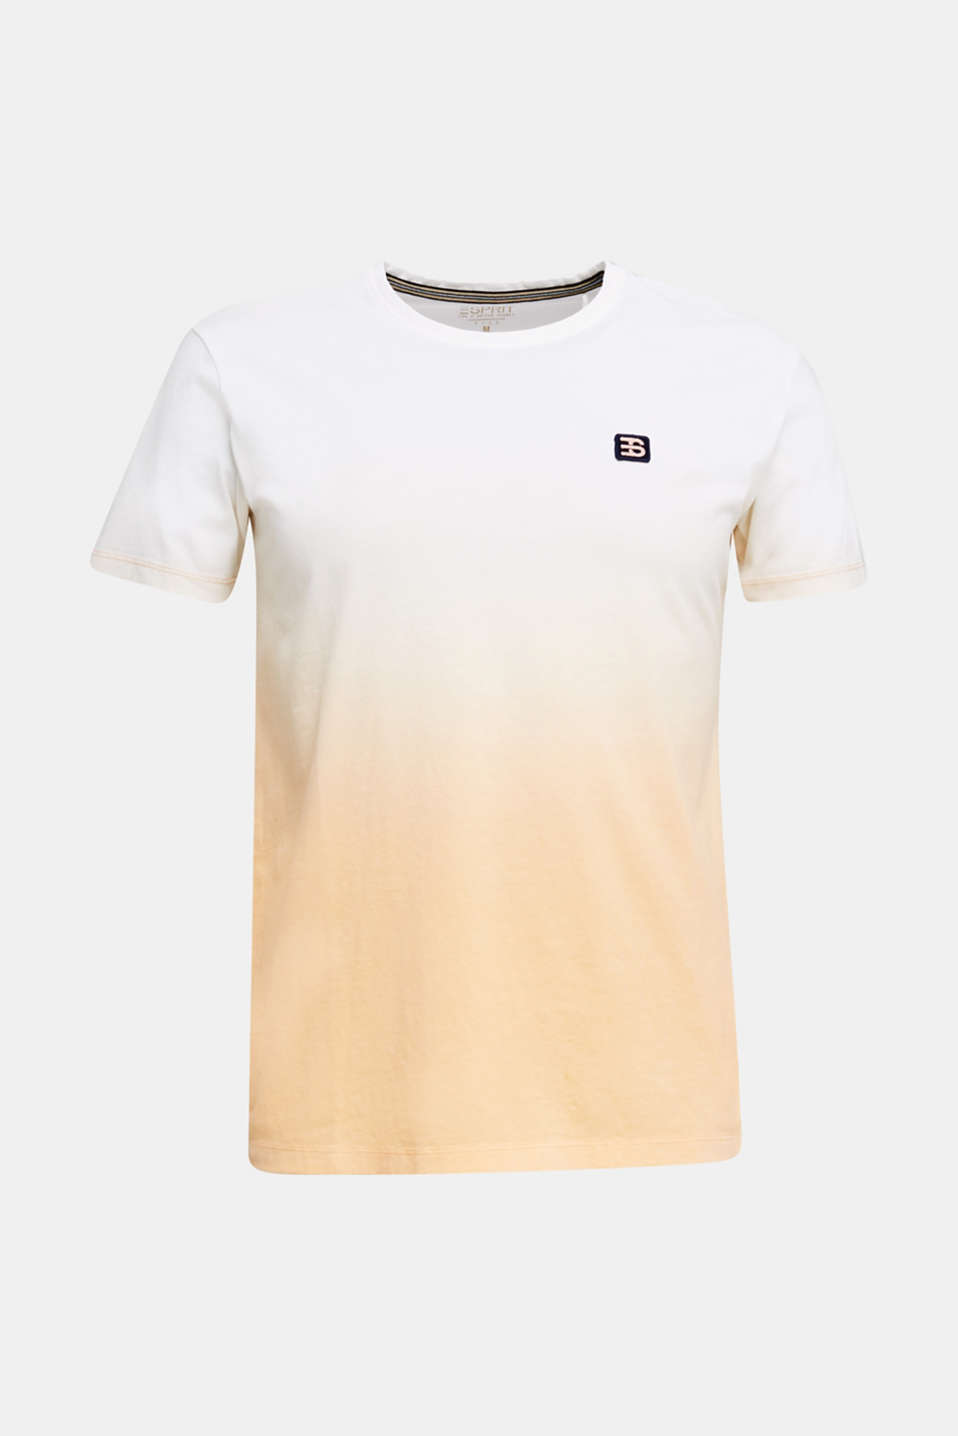 Jersey T-shirt with graduated colours, 100% cotton, PEACH 2, detail image number 6